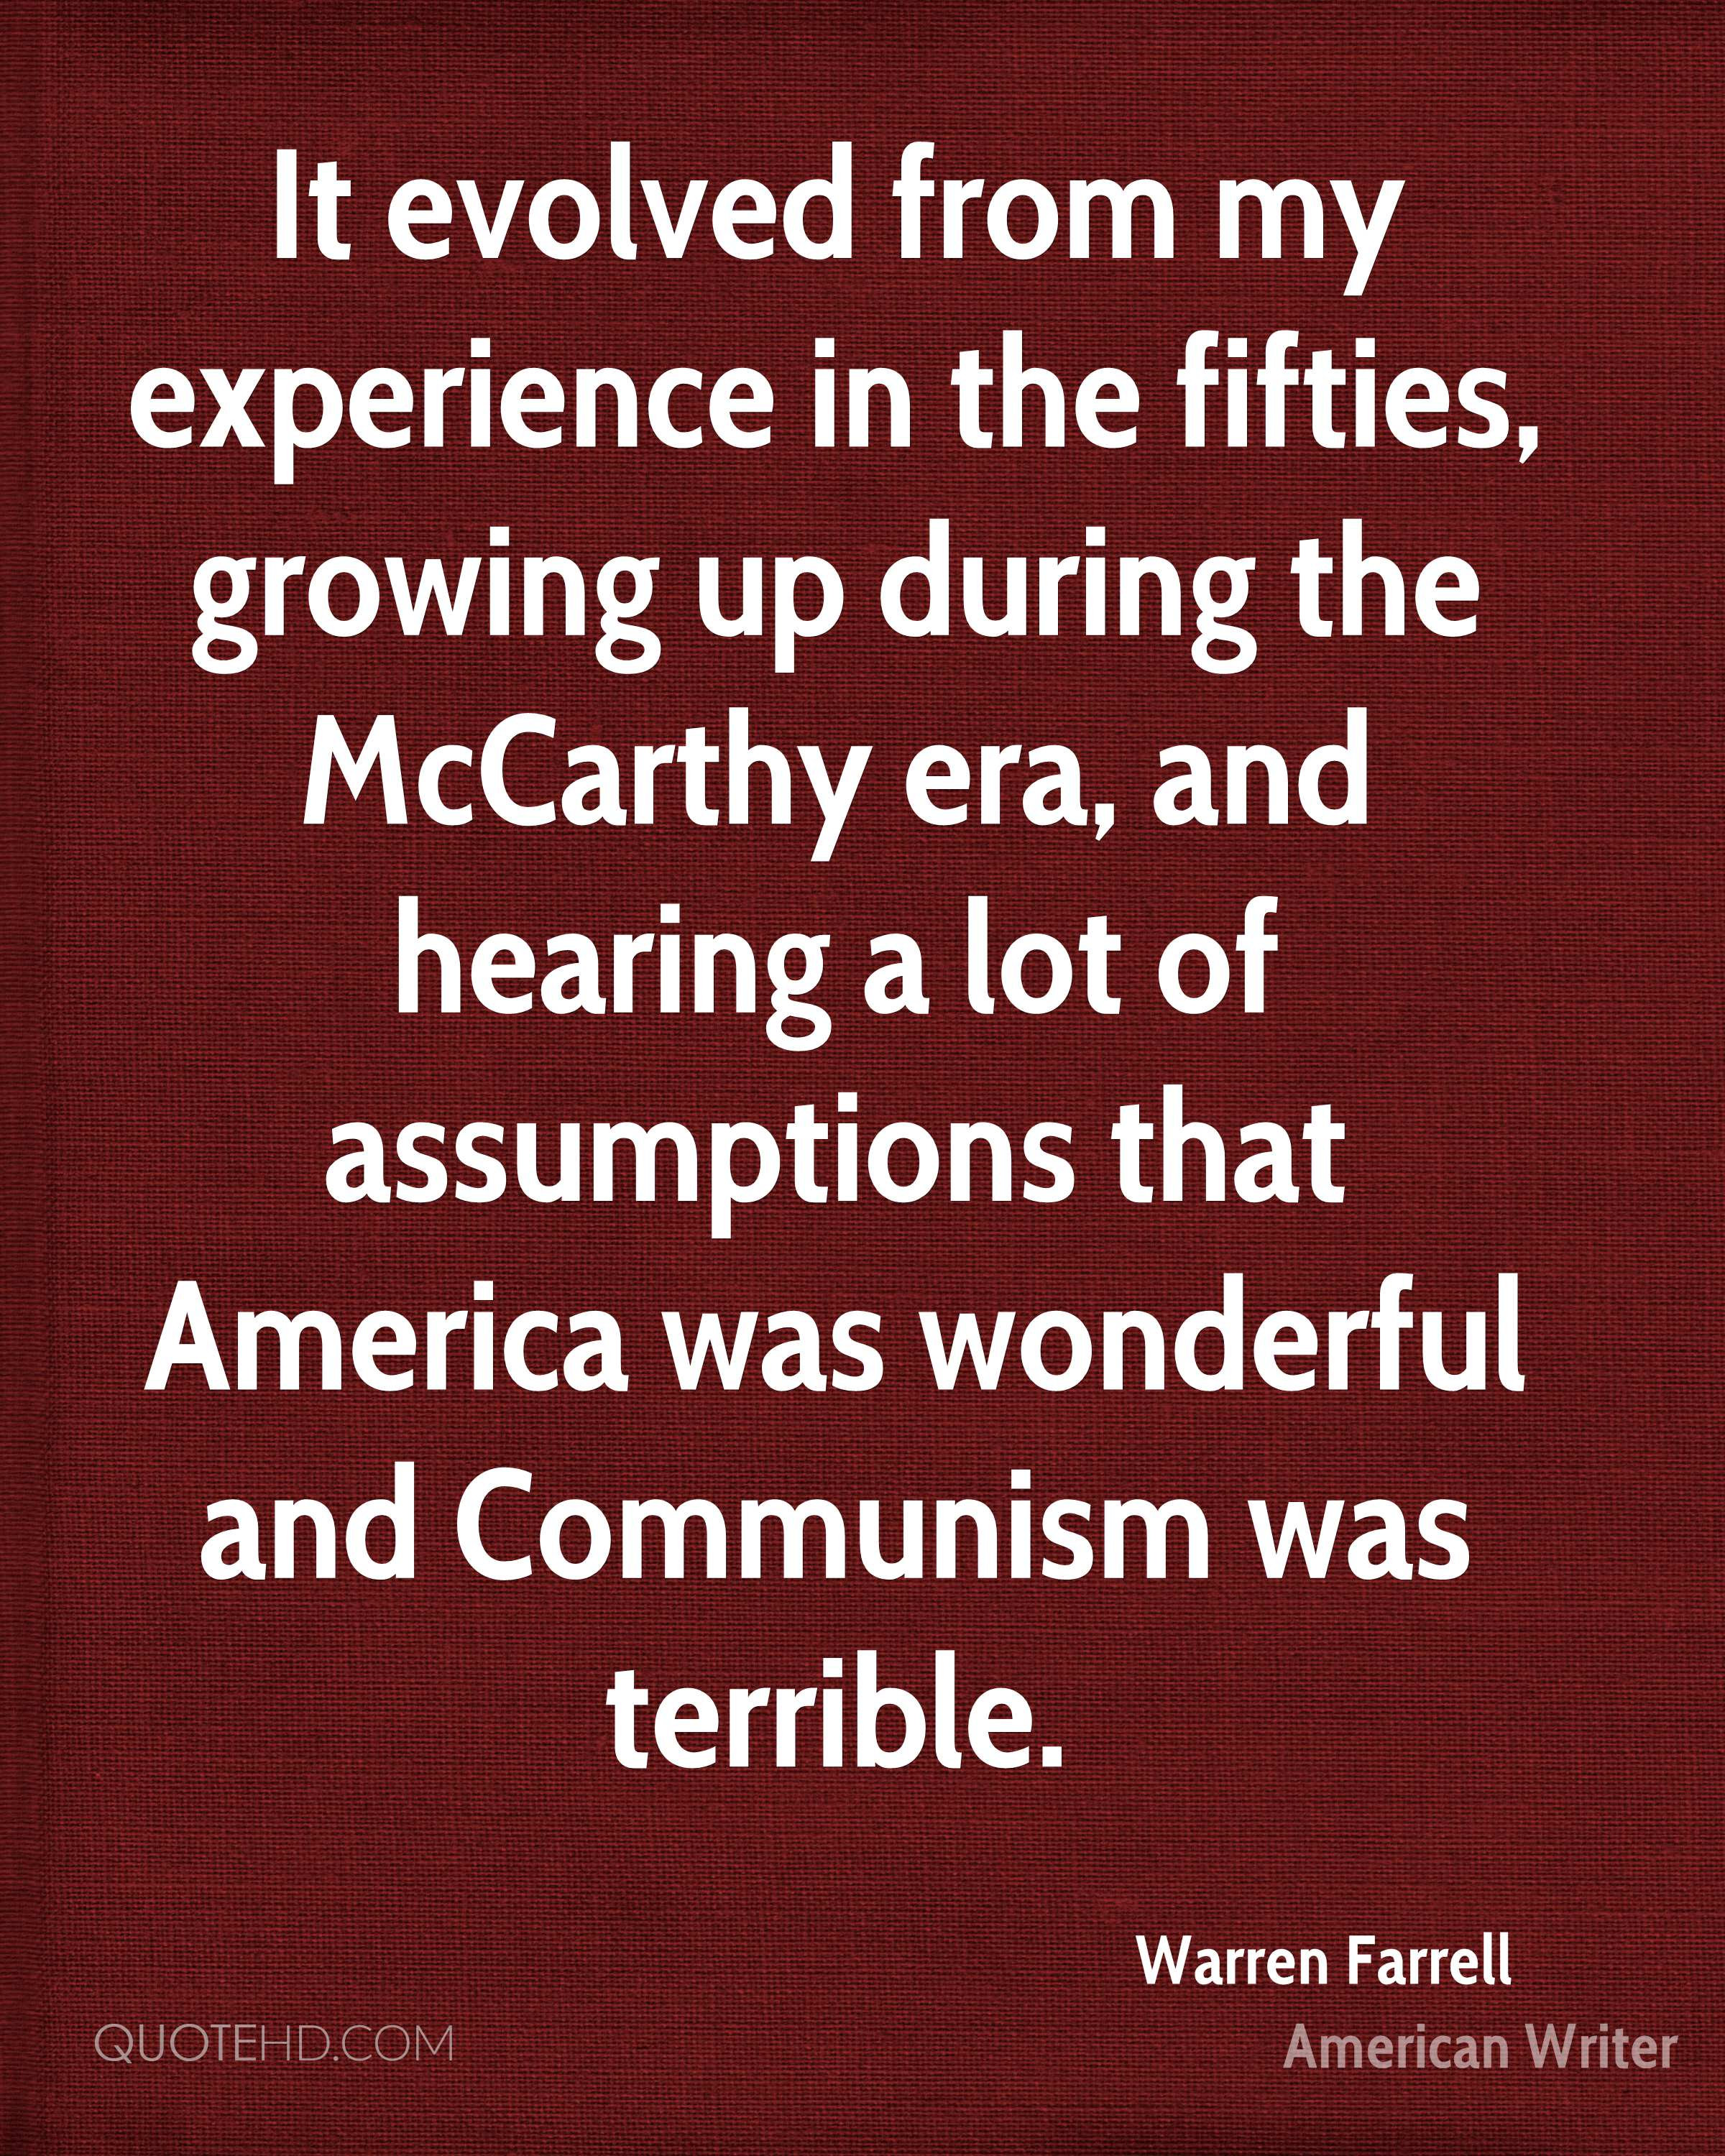 It evolved from my experience in the fifties, growing up during the McCarthy era, and hearing a lot of assumptions that America was wonderful and Communism was terrible.